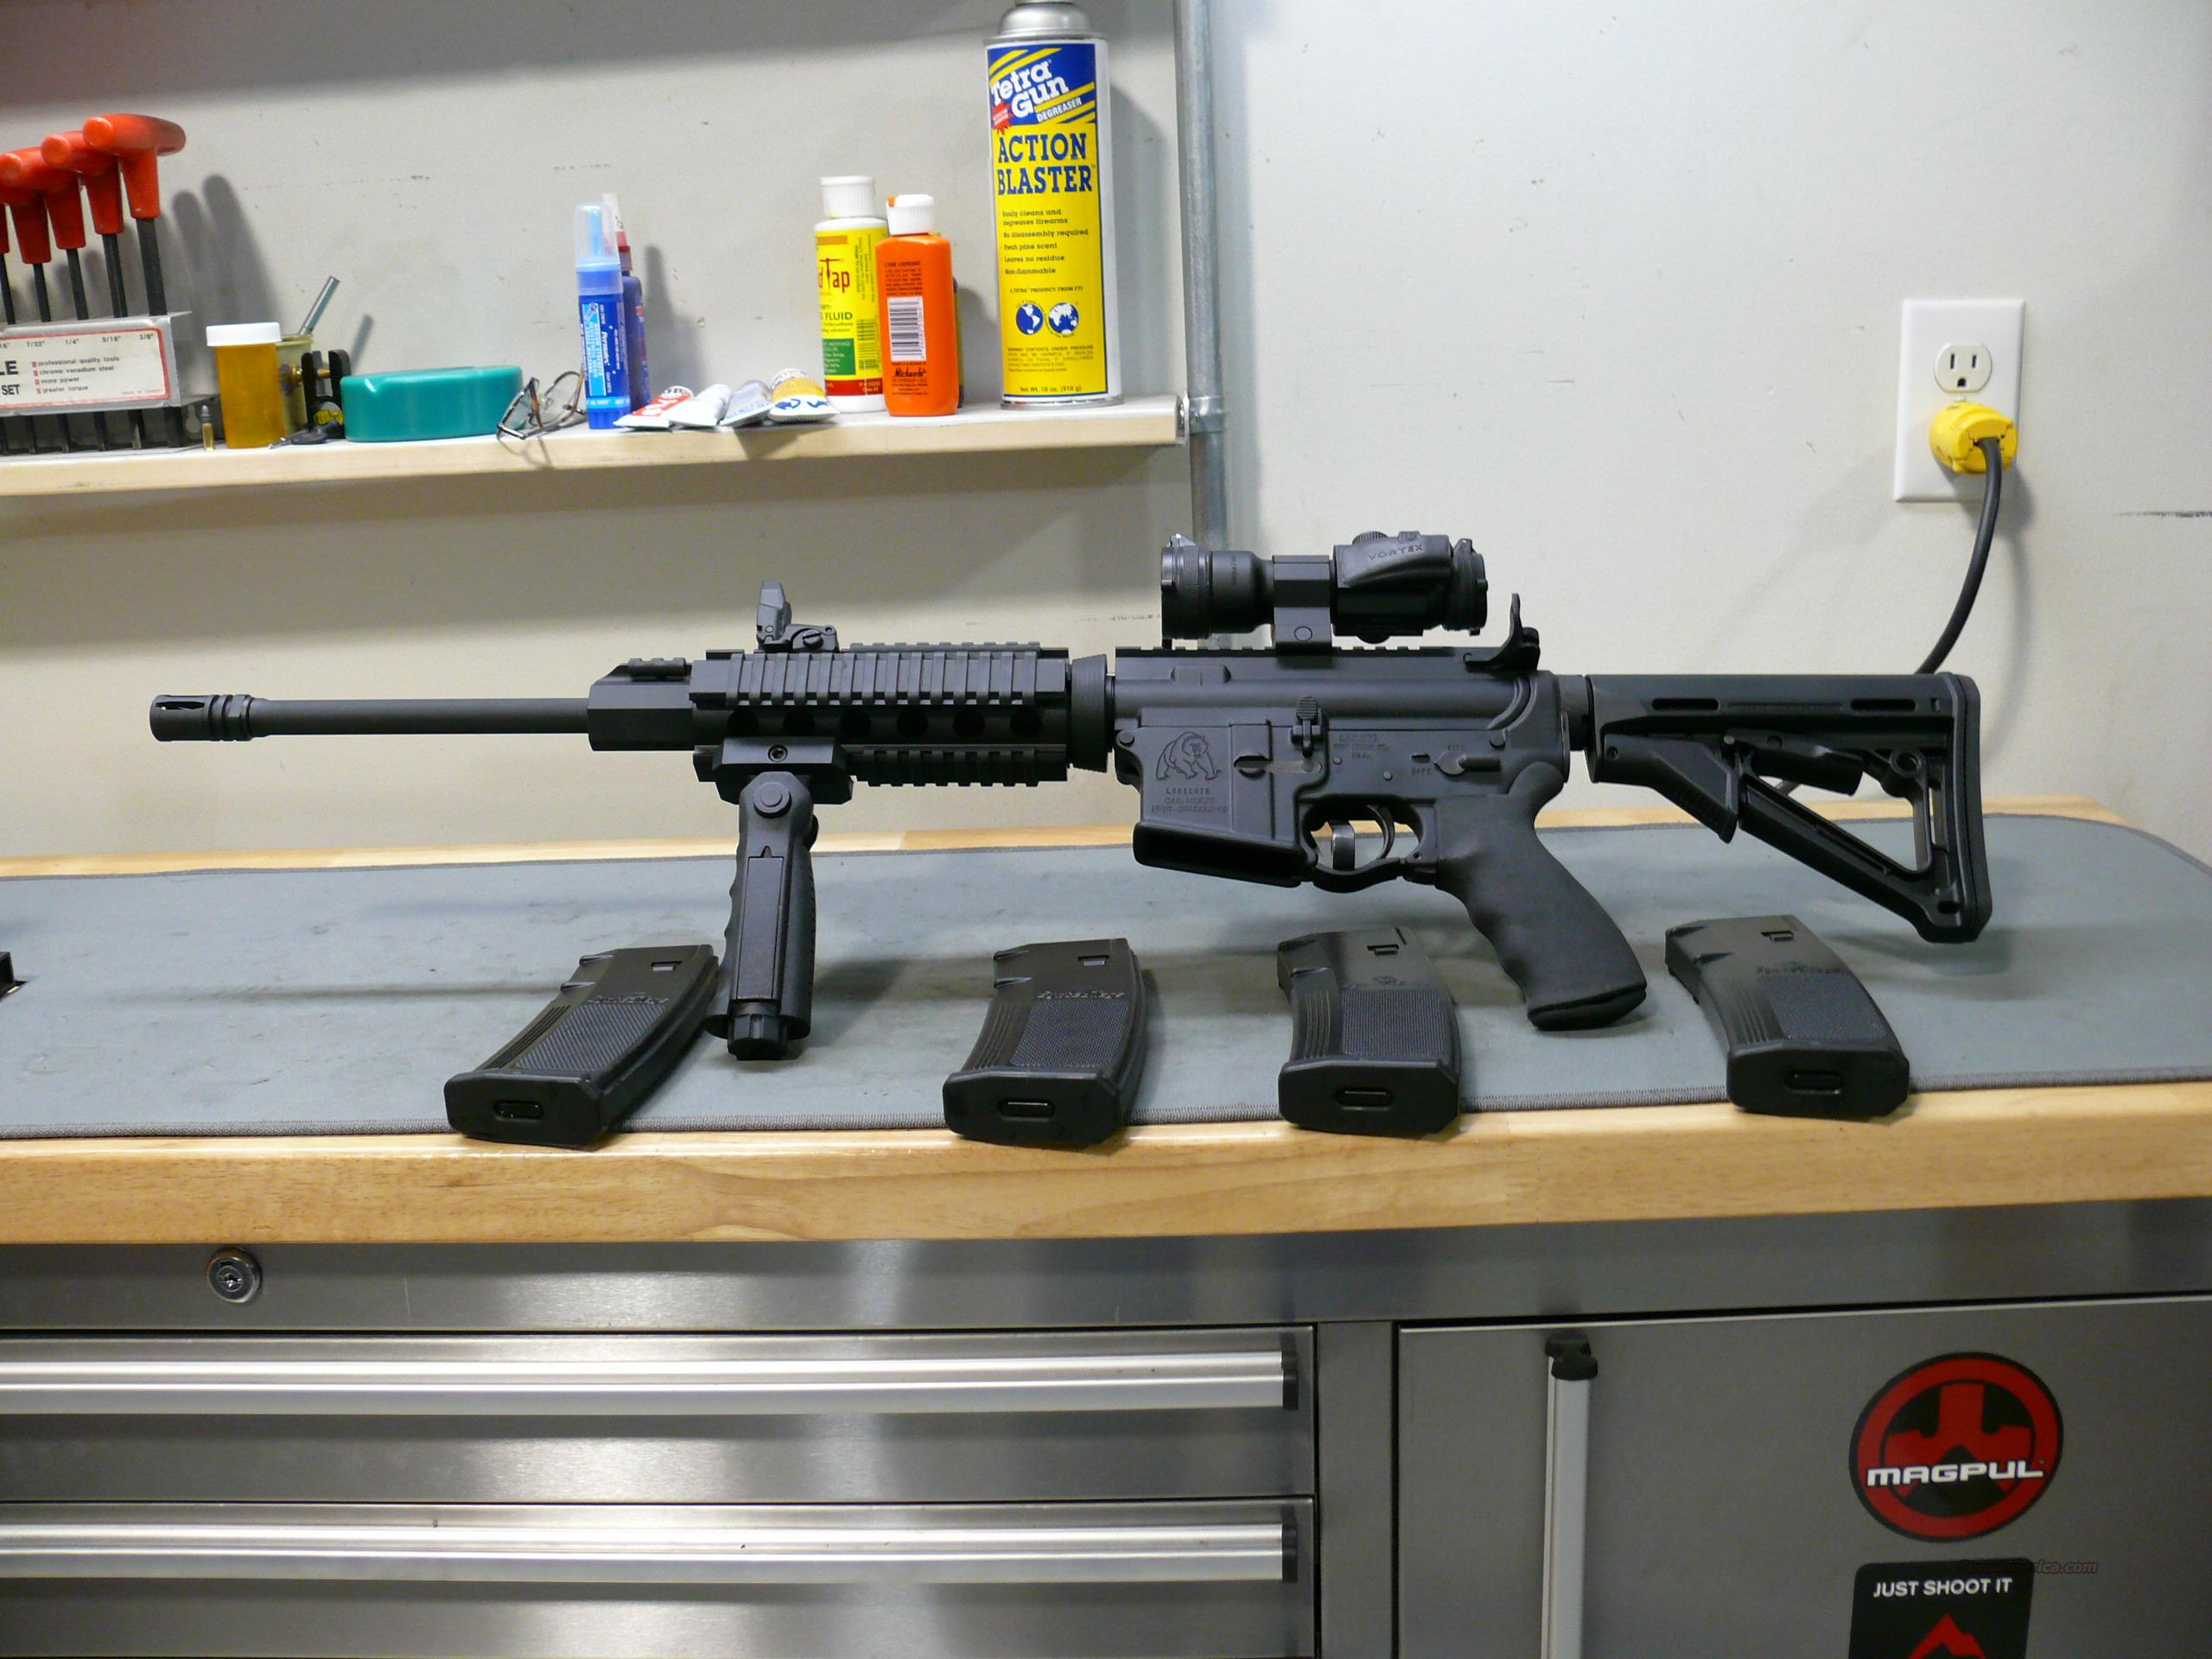 New Ar 15 Test Fired Only  Guns > Rifles > AR-15 Rifles - Small Manufacturers > Complete Rifle